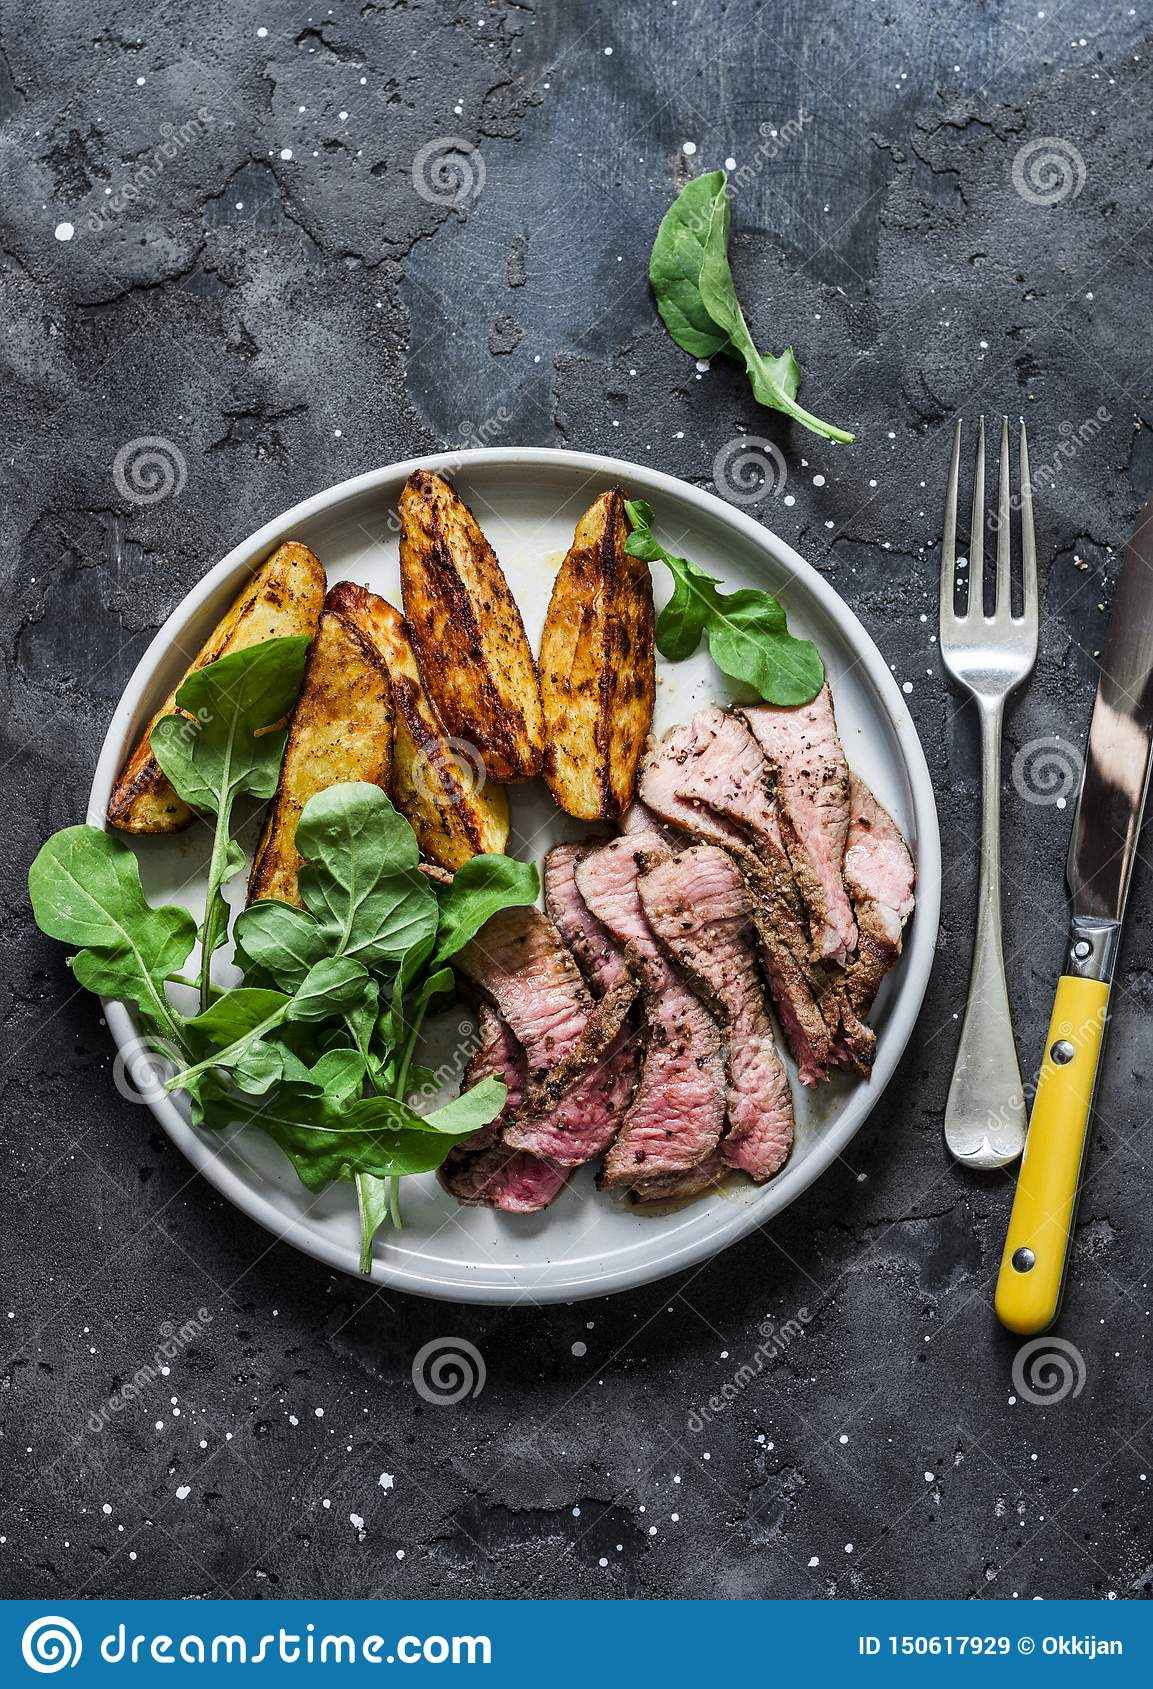 Beef steak and baked young potatoes - delicious lunch on a dark background, top view